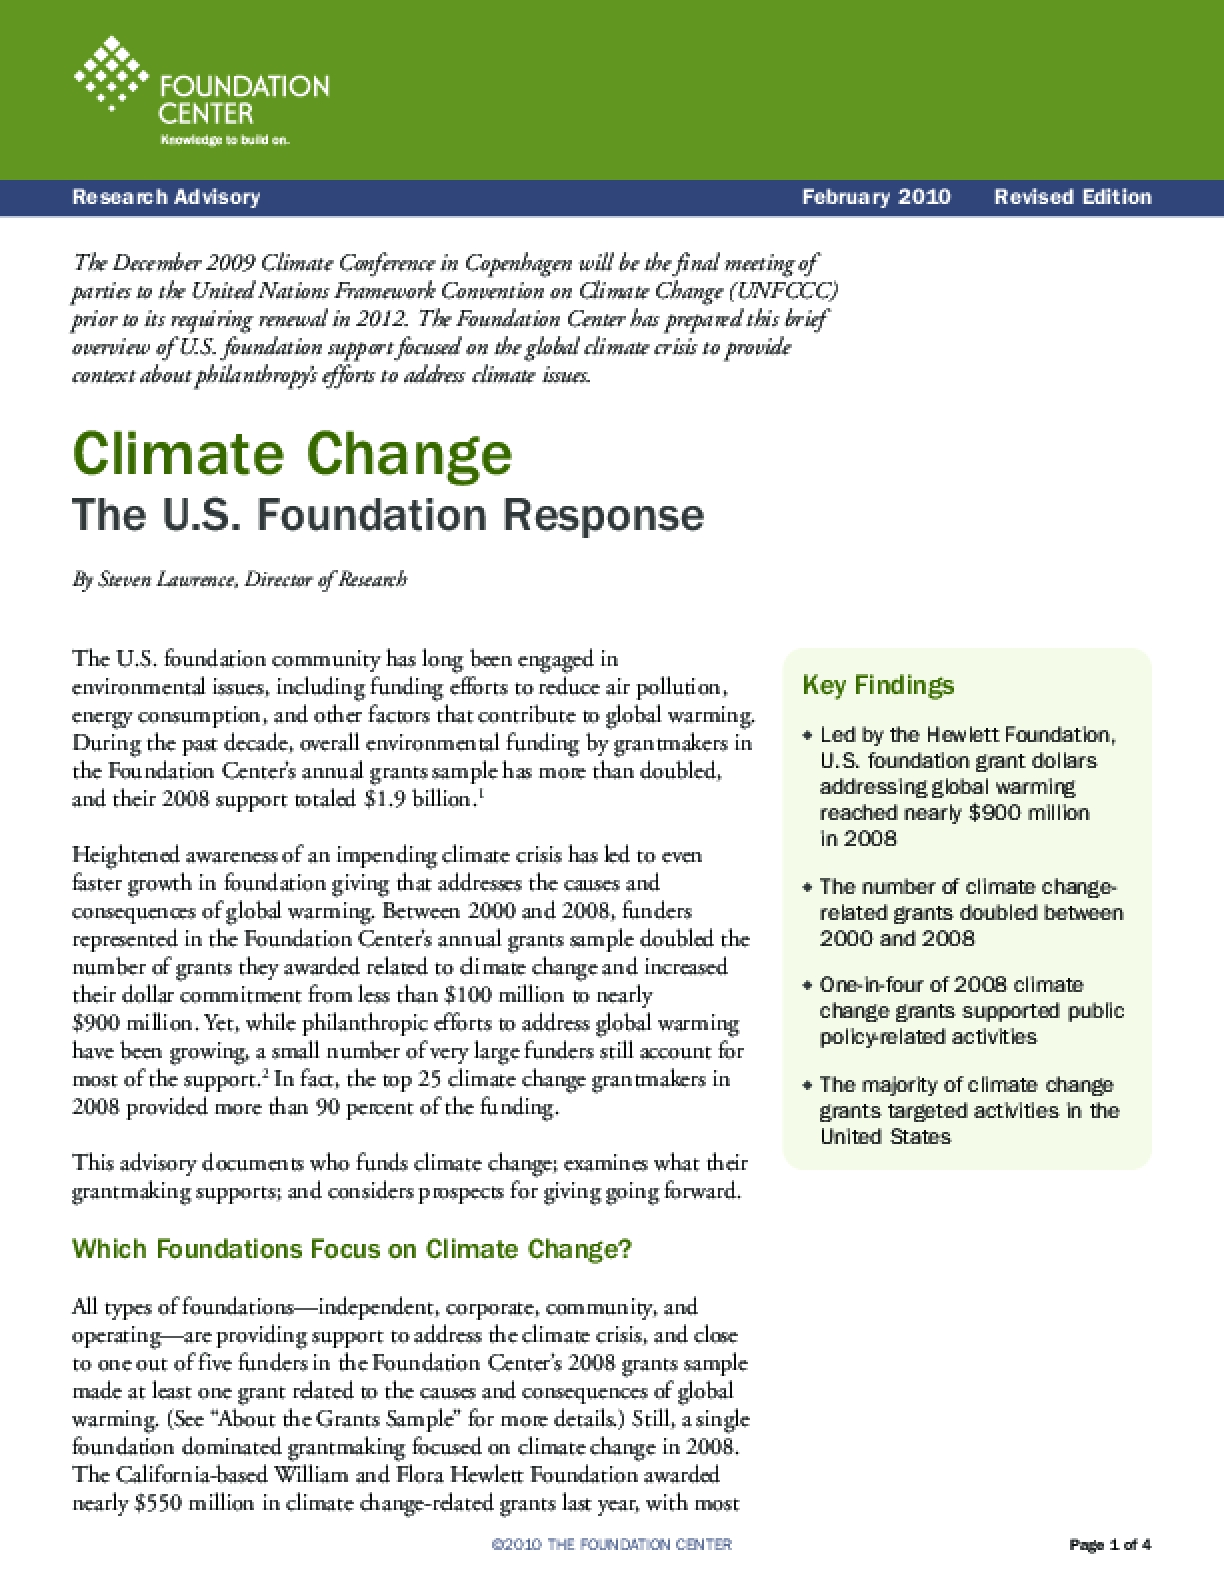 Climate Change: The U.S. Foundation Response